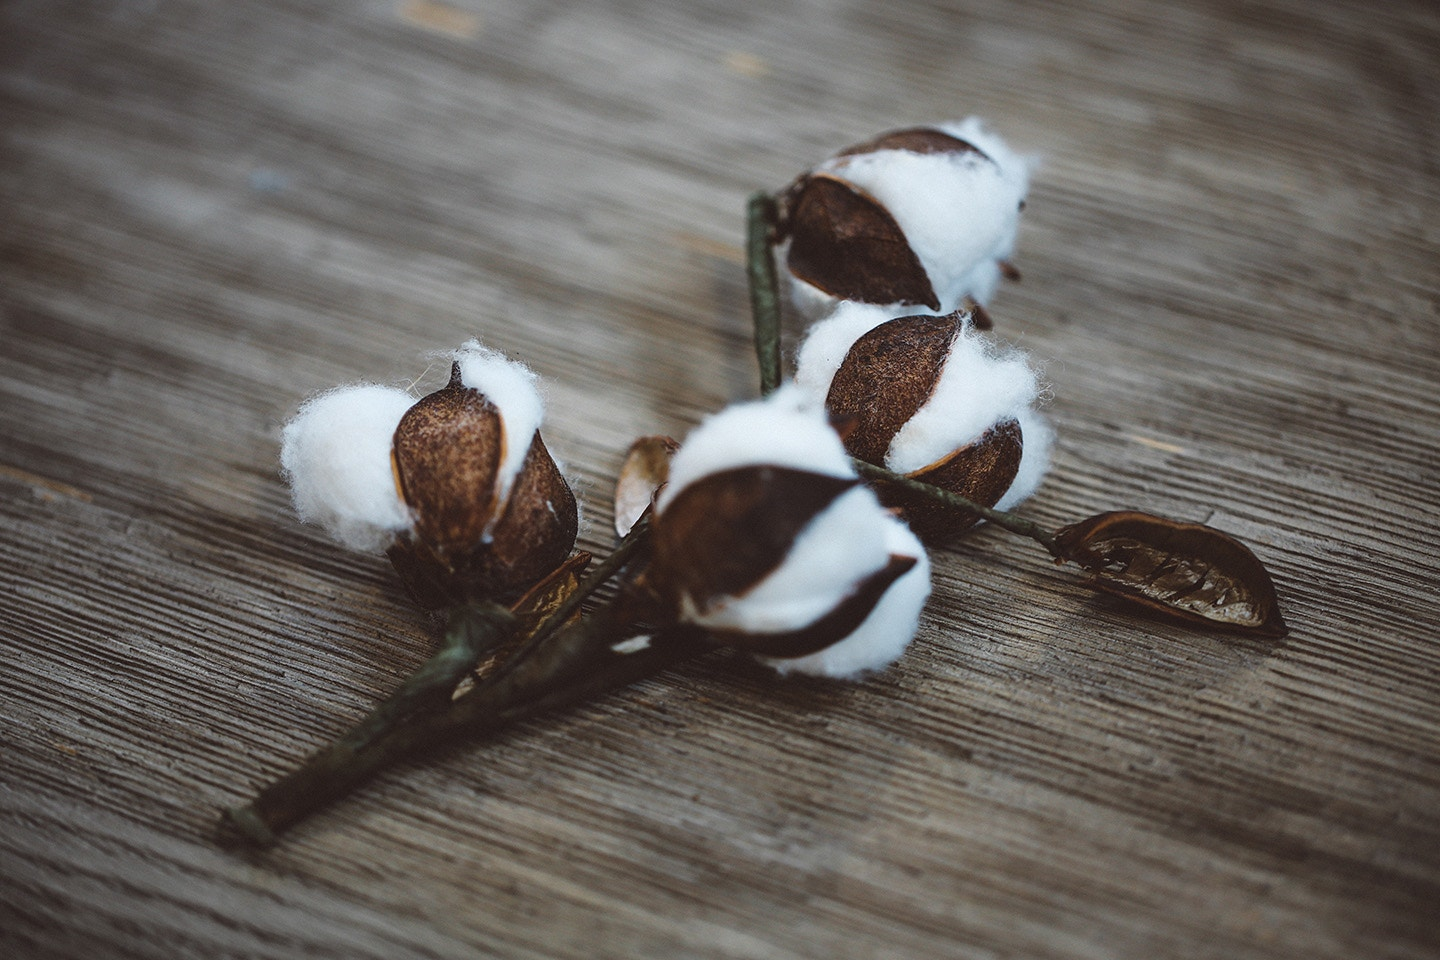 cotton plant on a wood background